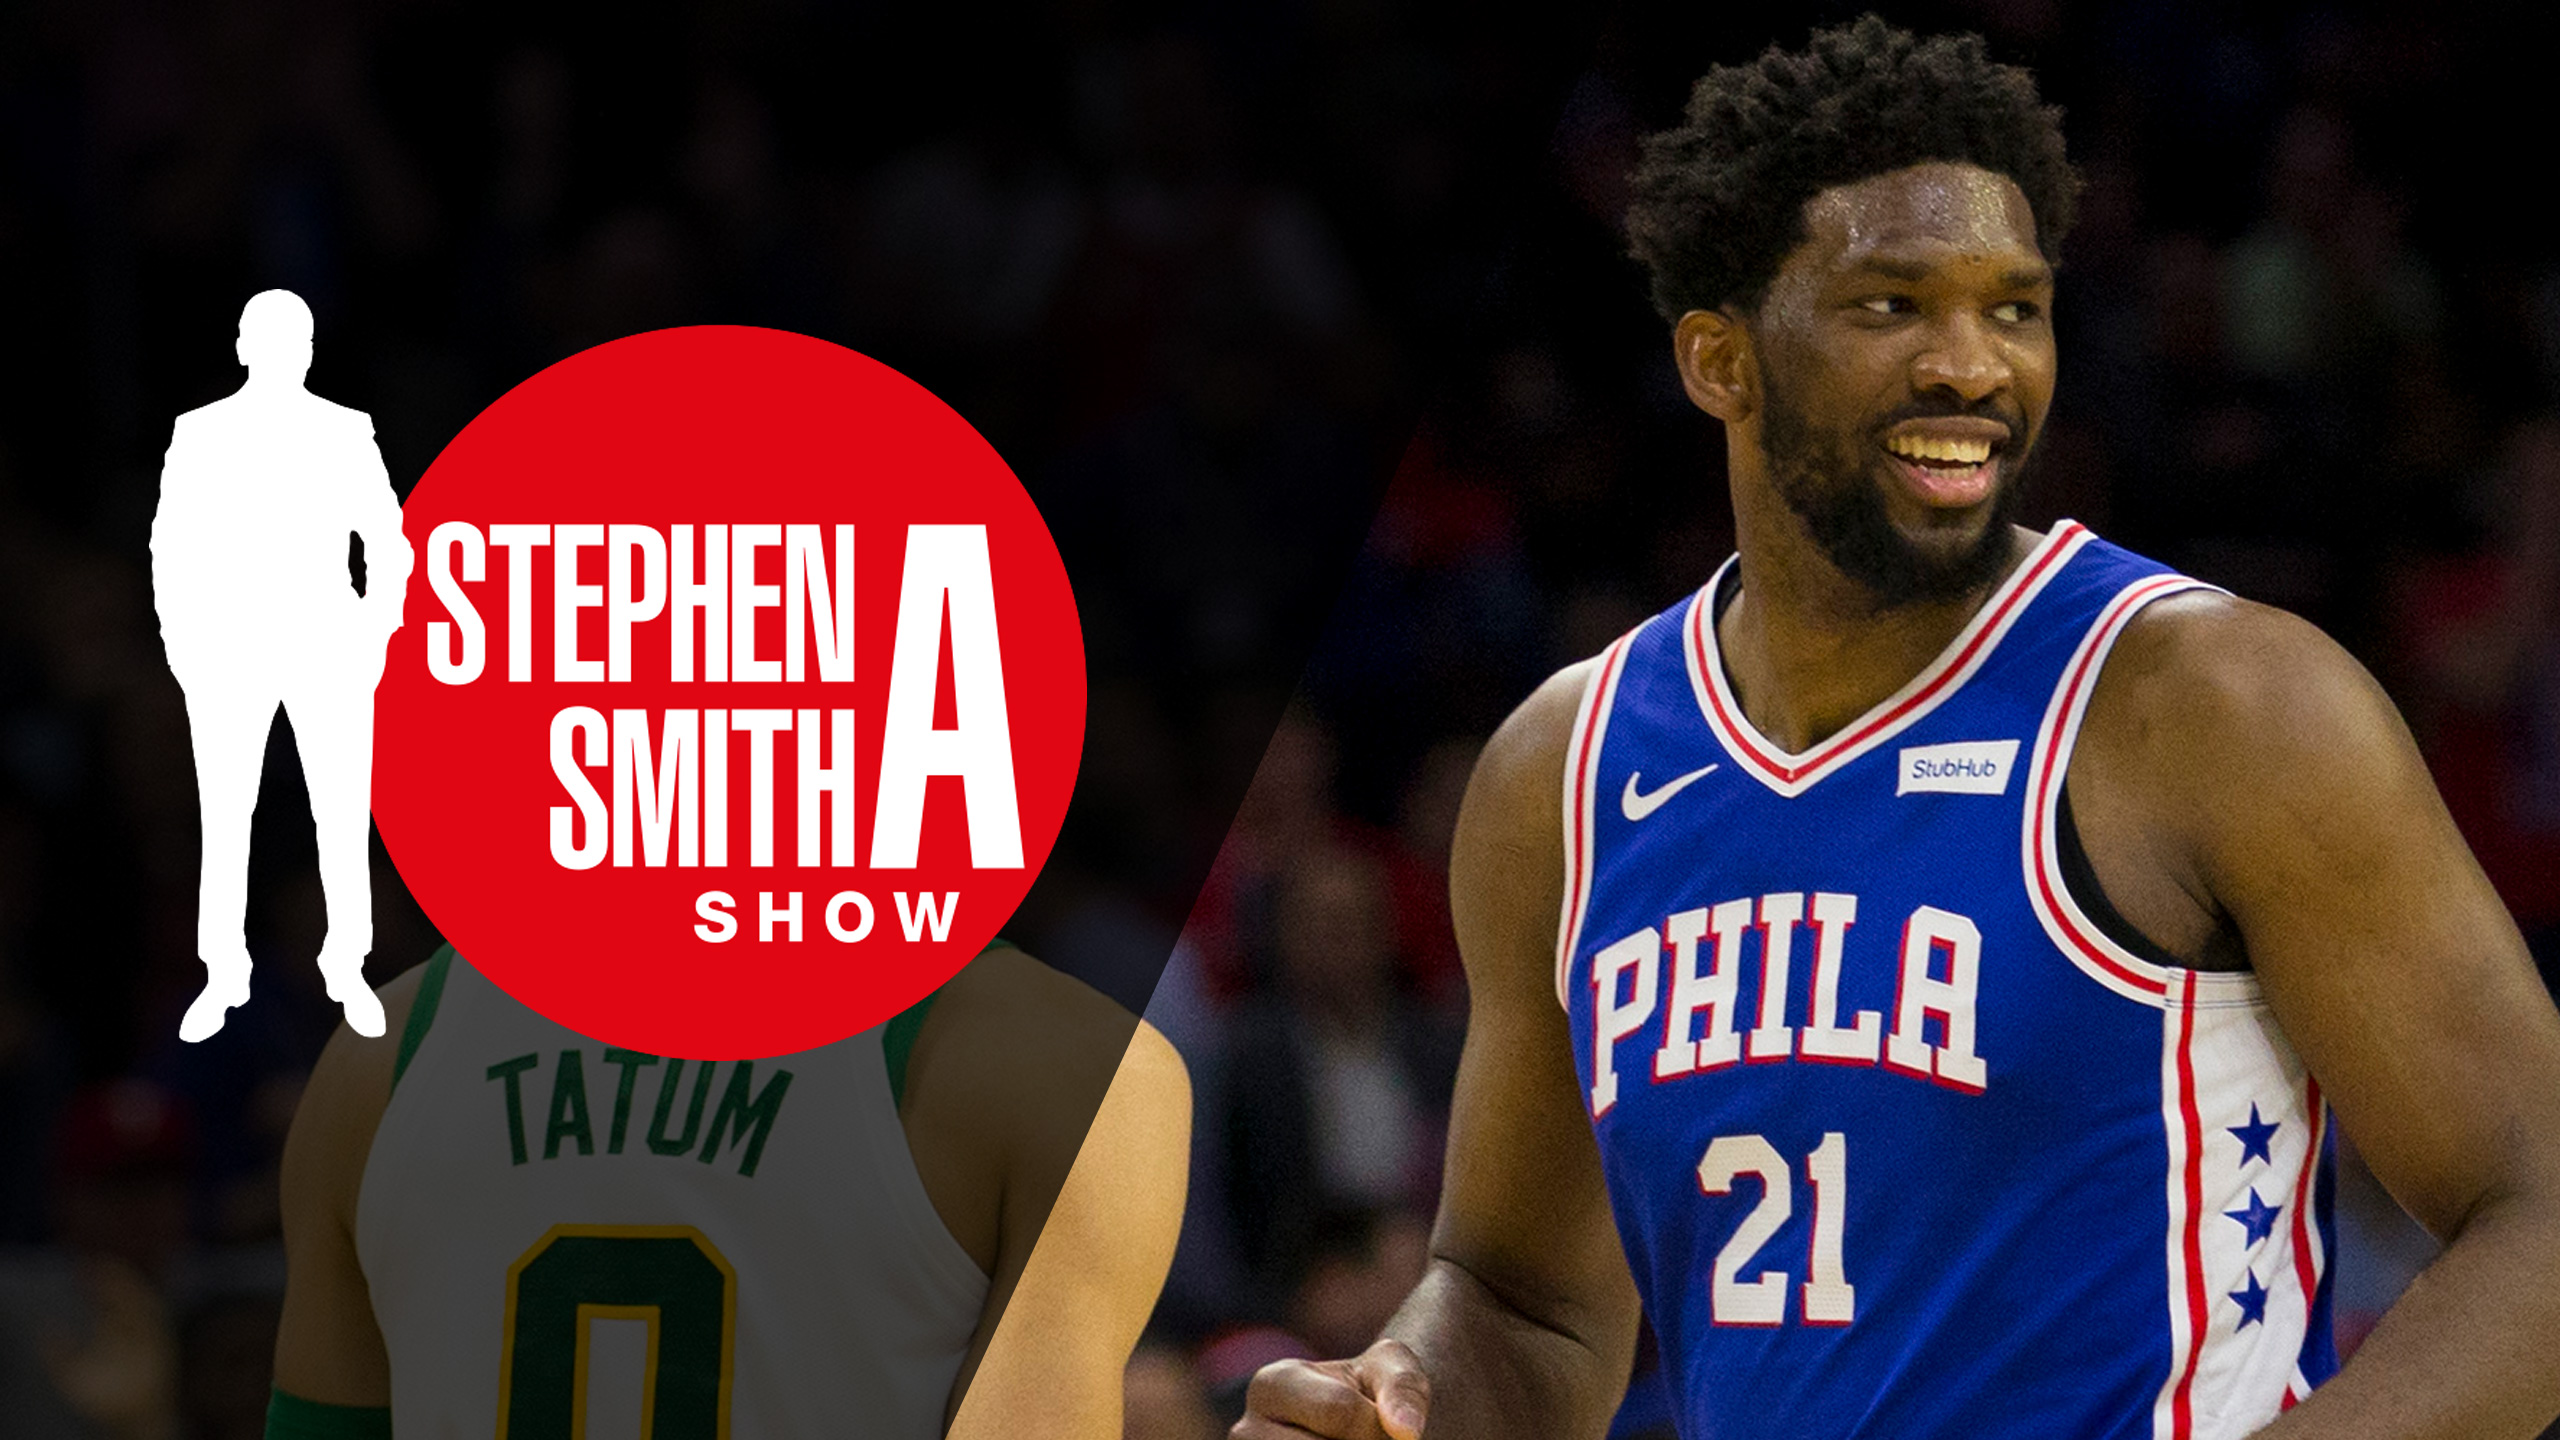 Thu, 3/21 - The Stephen A. Smith Show Presented by Progressive